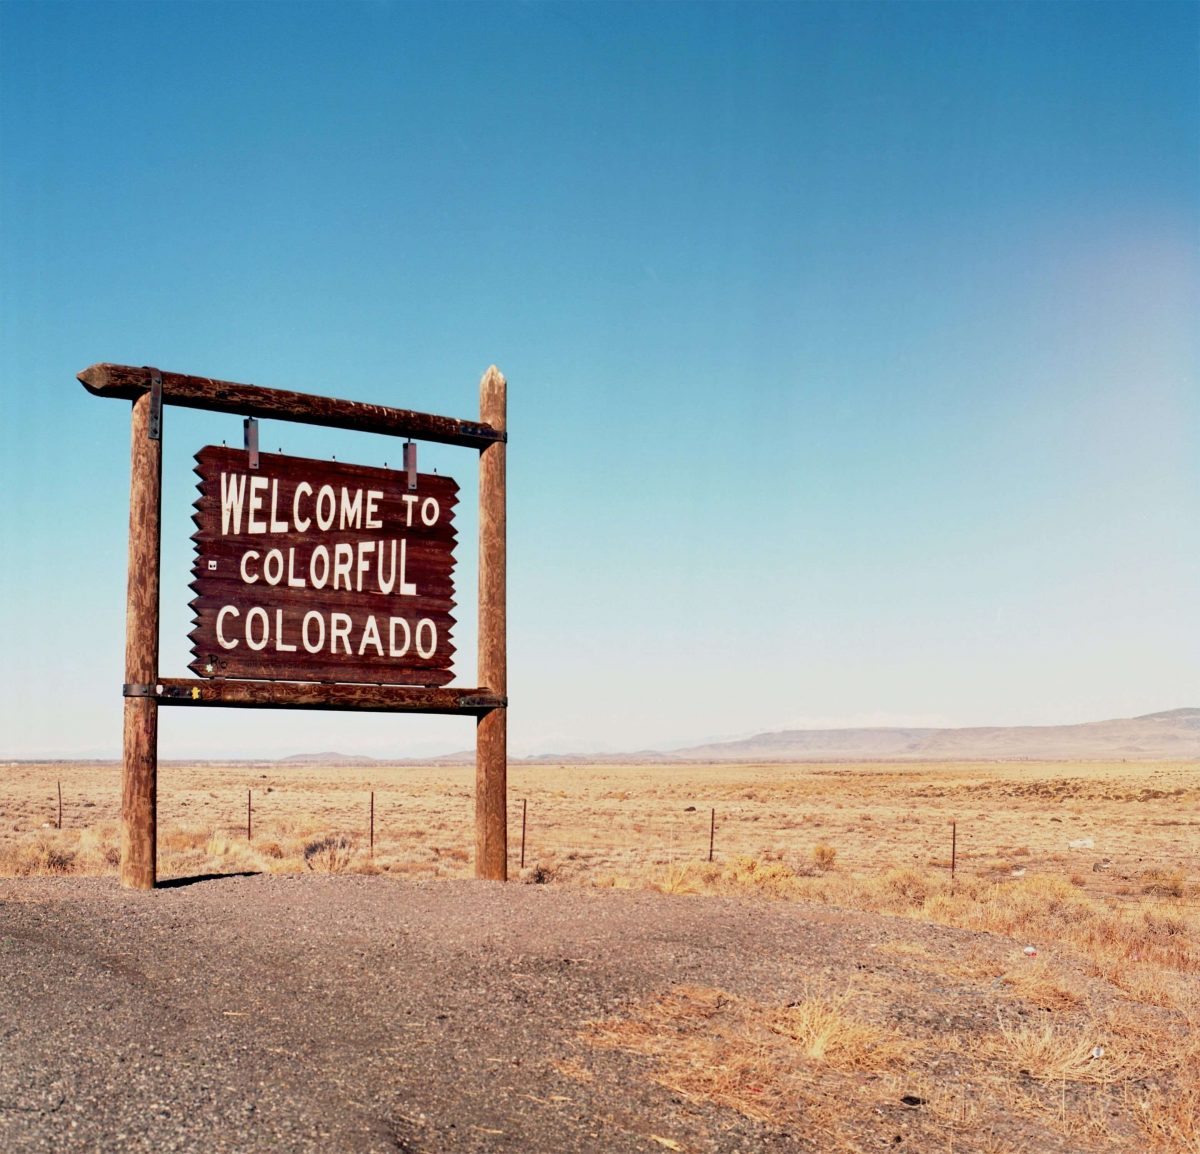 welcome to colorado sign in desert